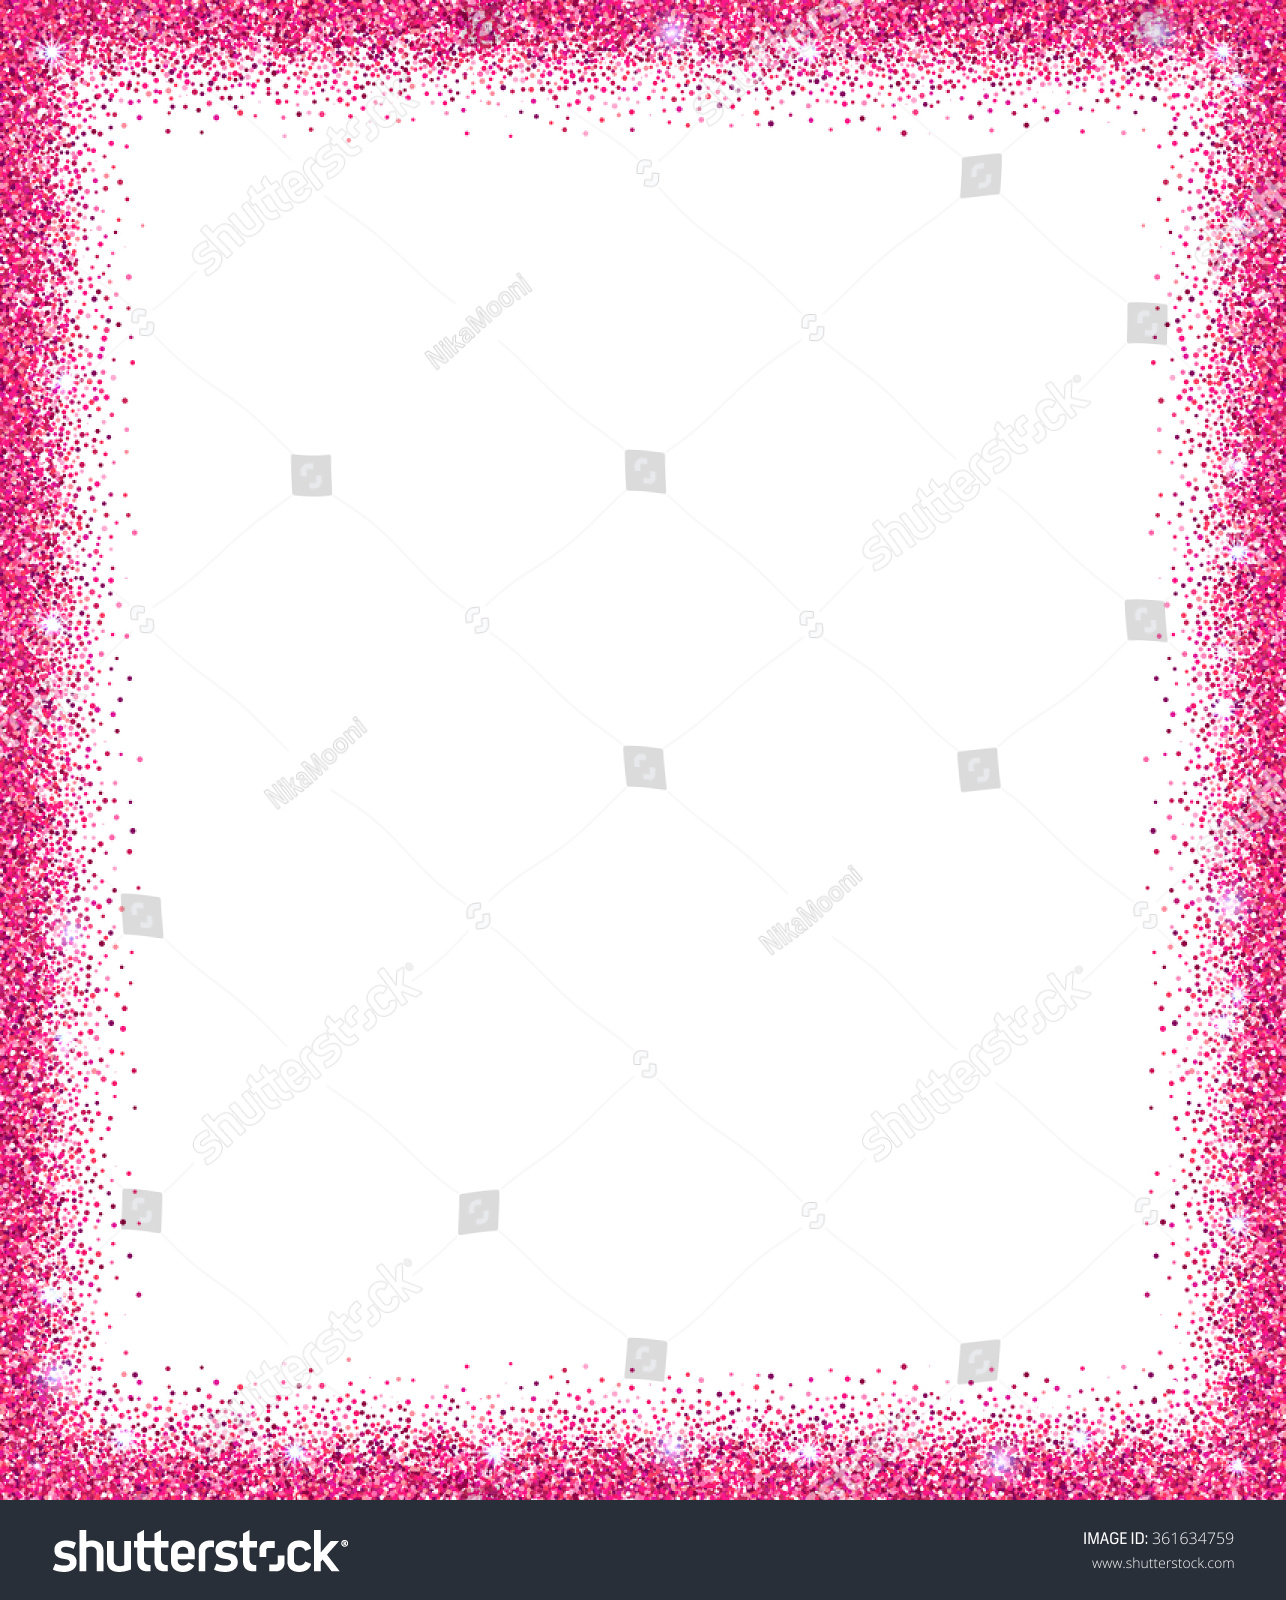 Pink Glitter Background Pink Sparkle Frame Stock Vector ...